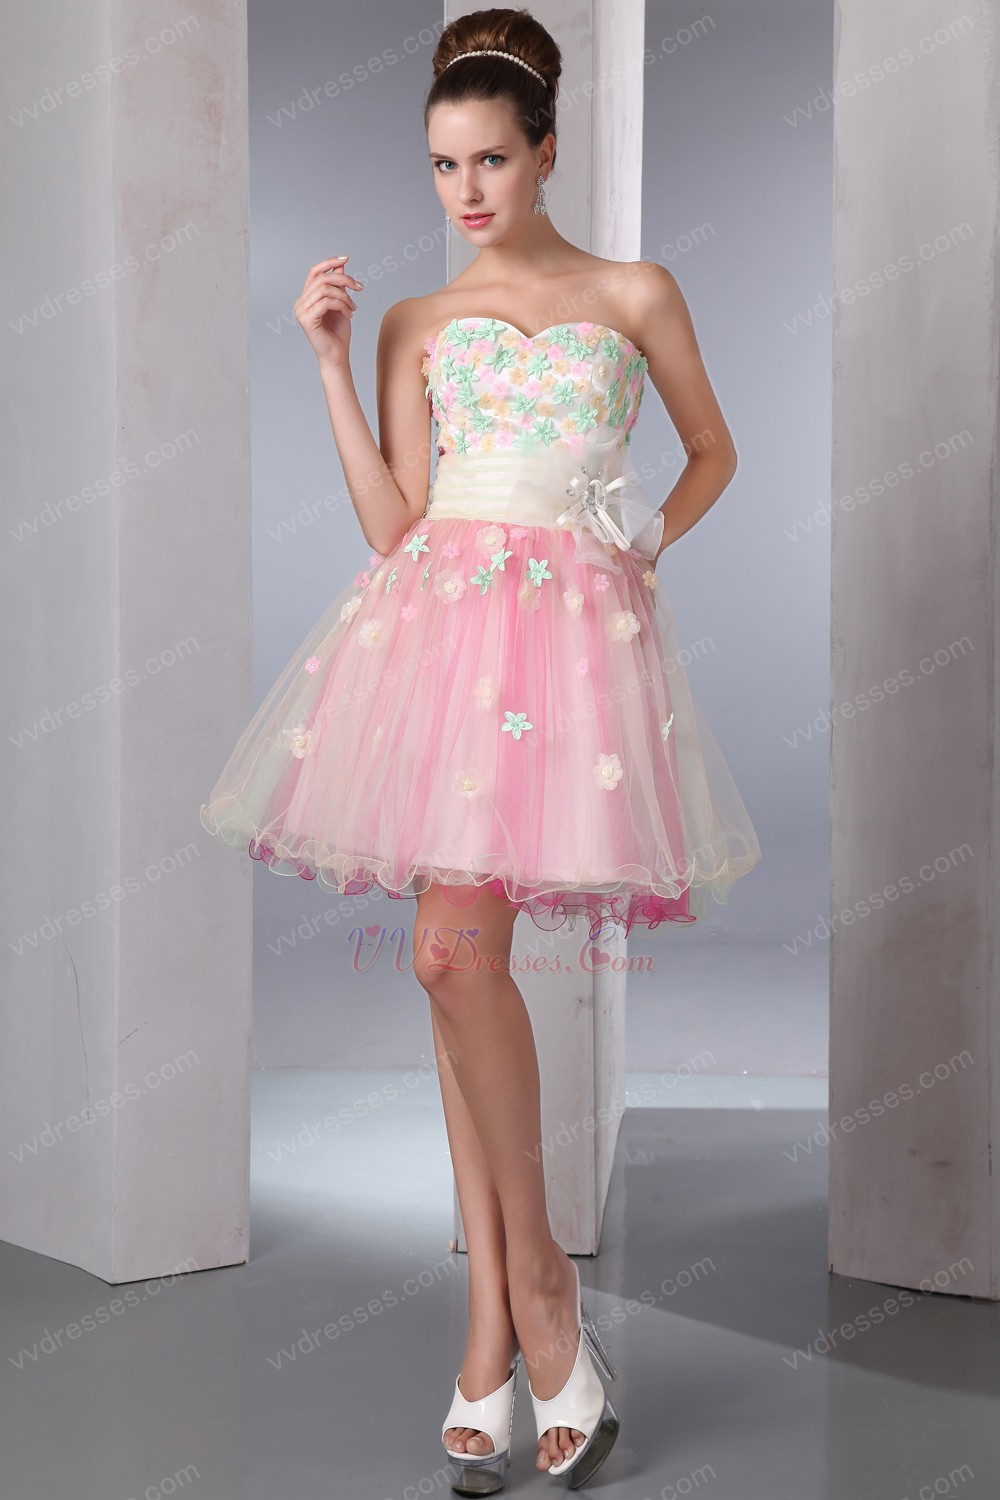 Lovely Colorful Appliqued Flowers Cocktail Girls Dress